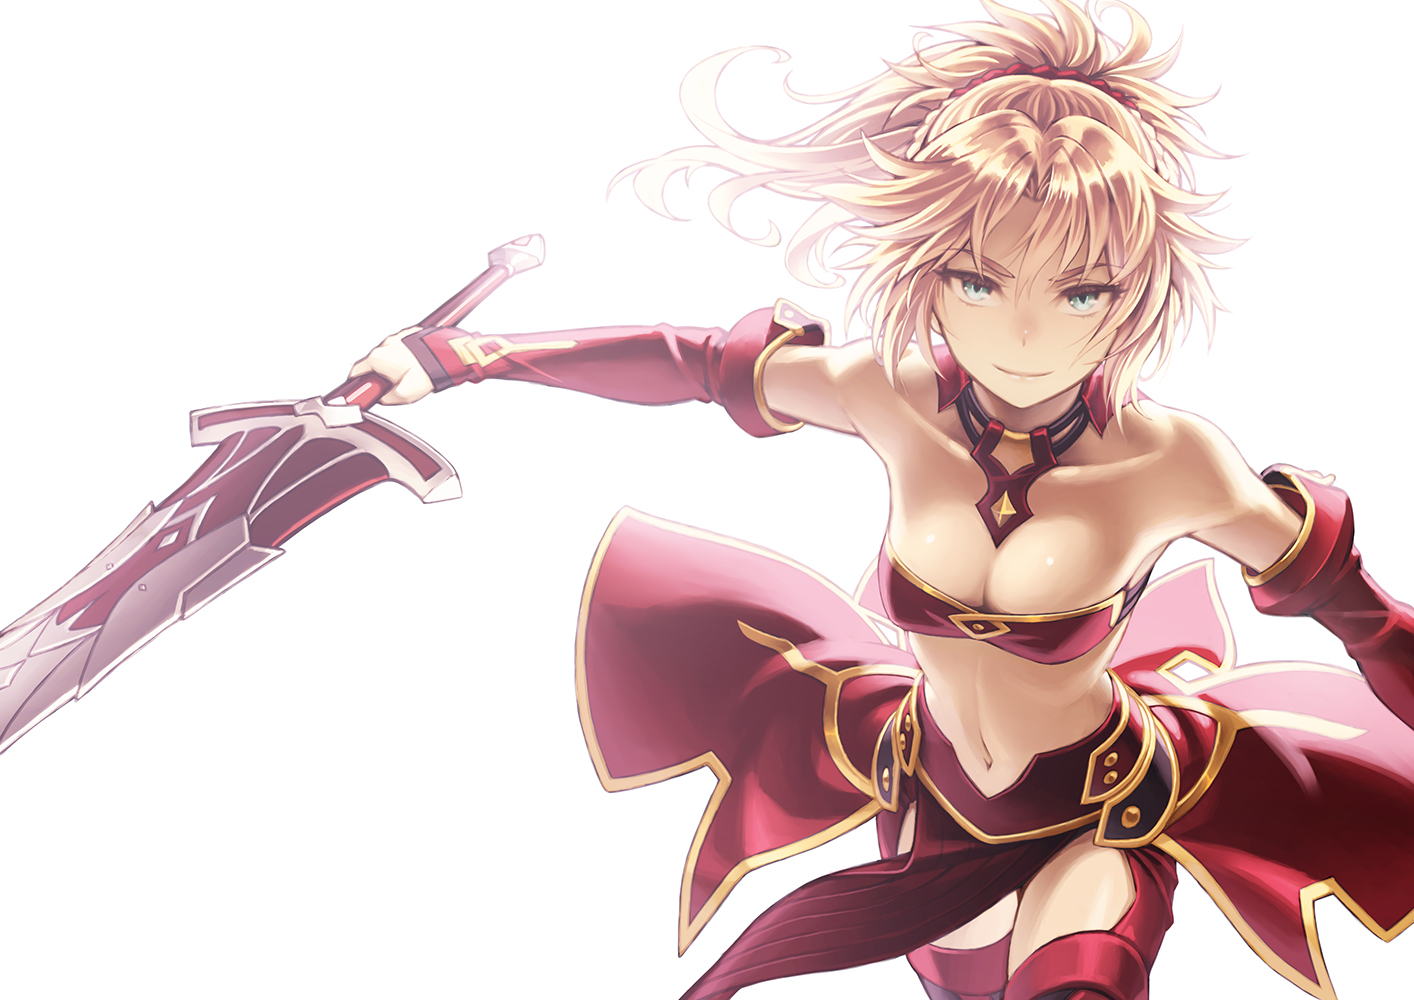 blonde_hair elbow_gloves fate/apocrypha fate/grand_order fate_(series) gloves green_eyes mordred navel ponytail short_hair sword tagme_(artist) thighhighs weapon white